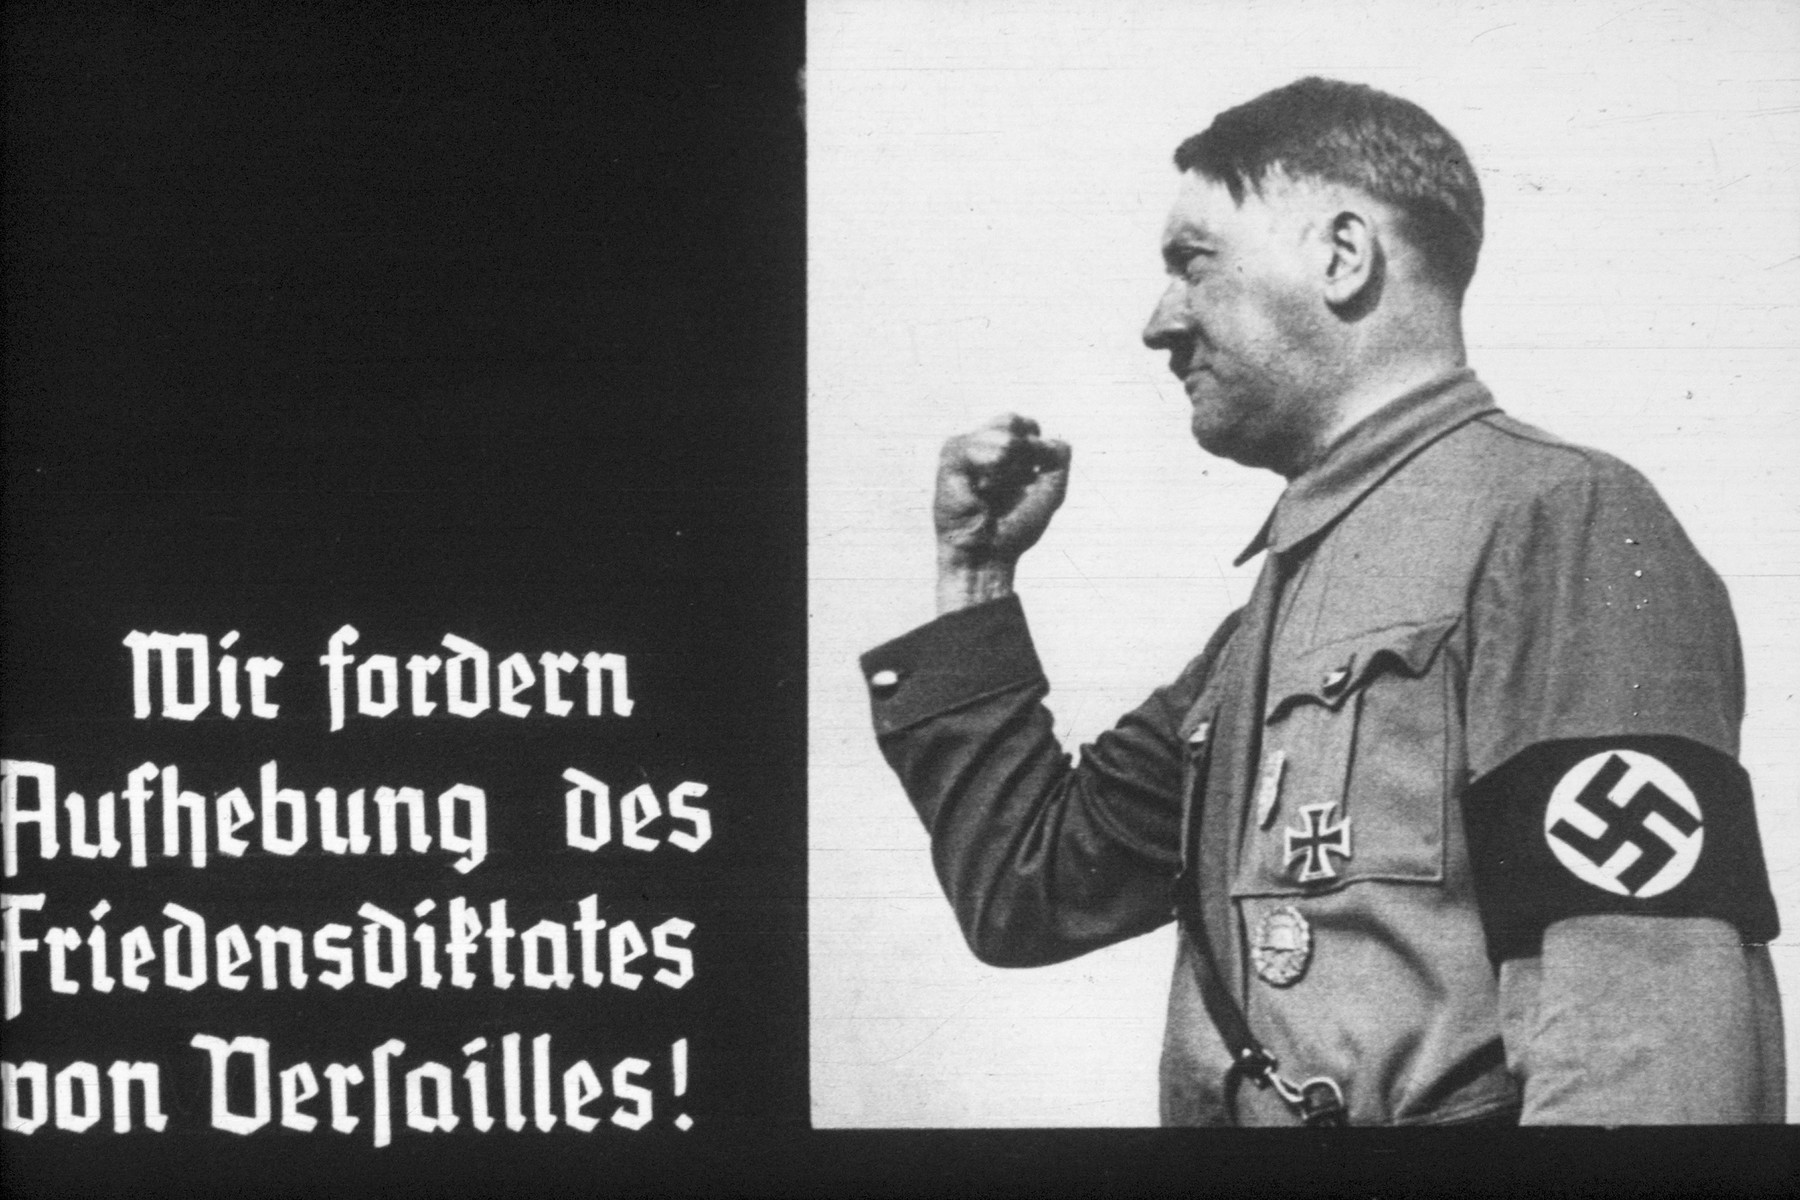 14th slide from a Hitler Youth slideshow about the aftermath of WWI, Versailles, how it was overcome and the rise of Nazism.  Wir forder Aufhebung des Friedensdiktates von Versailles! // We demand repeal of the Treaty of Versailles!